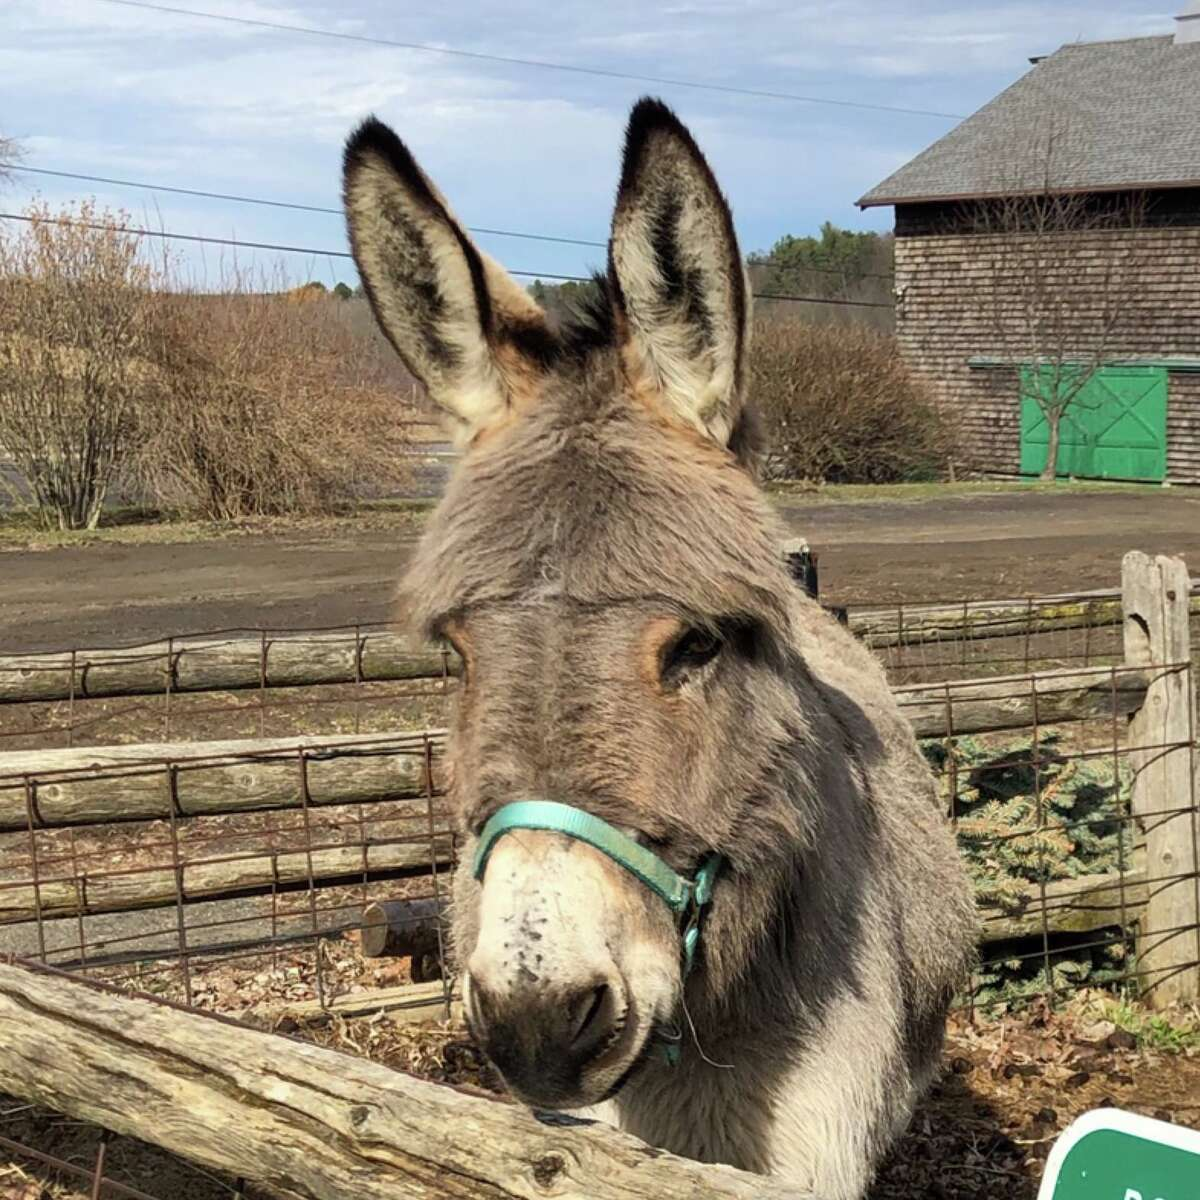 """Guilderland Public Library is planning a farm tour for families at Indian Ladder Farms at 10:30 a.m. Thursday, July 8, as part of its """"Tails and Tales"""" Summer Reading Program, Among the highlights, Simon the Donkey may be on hand to greet the group. Registration is required on the Events tab of guilderlandlibrary.org, or by calling 518.456.2400 ext. 3."""